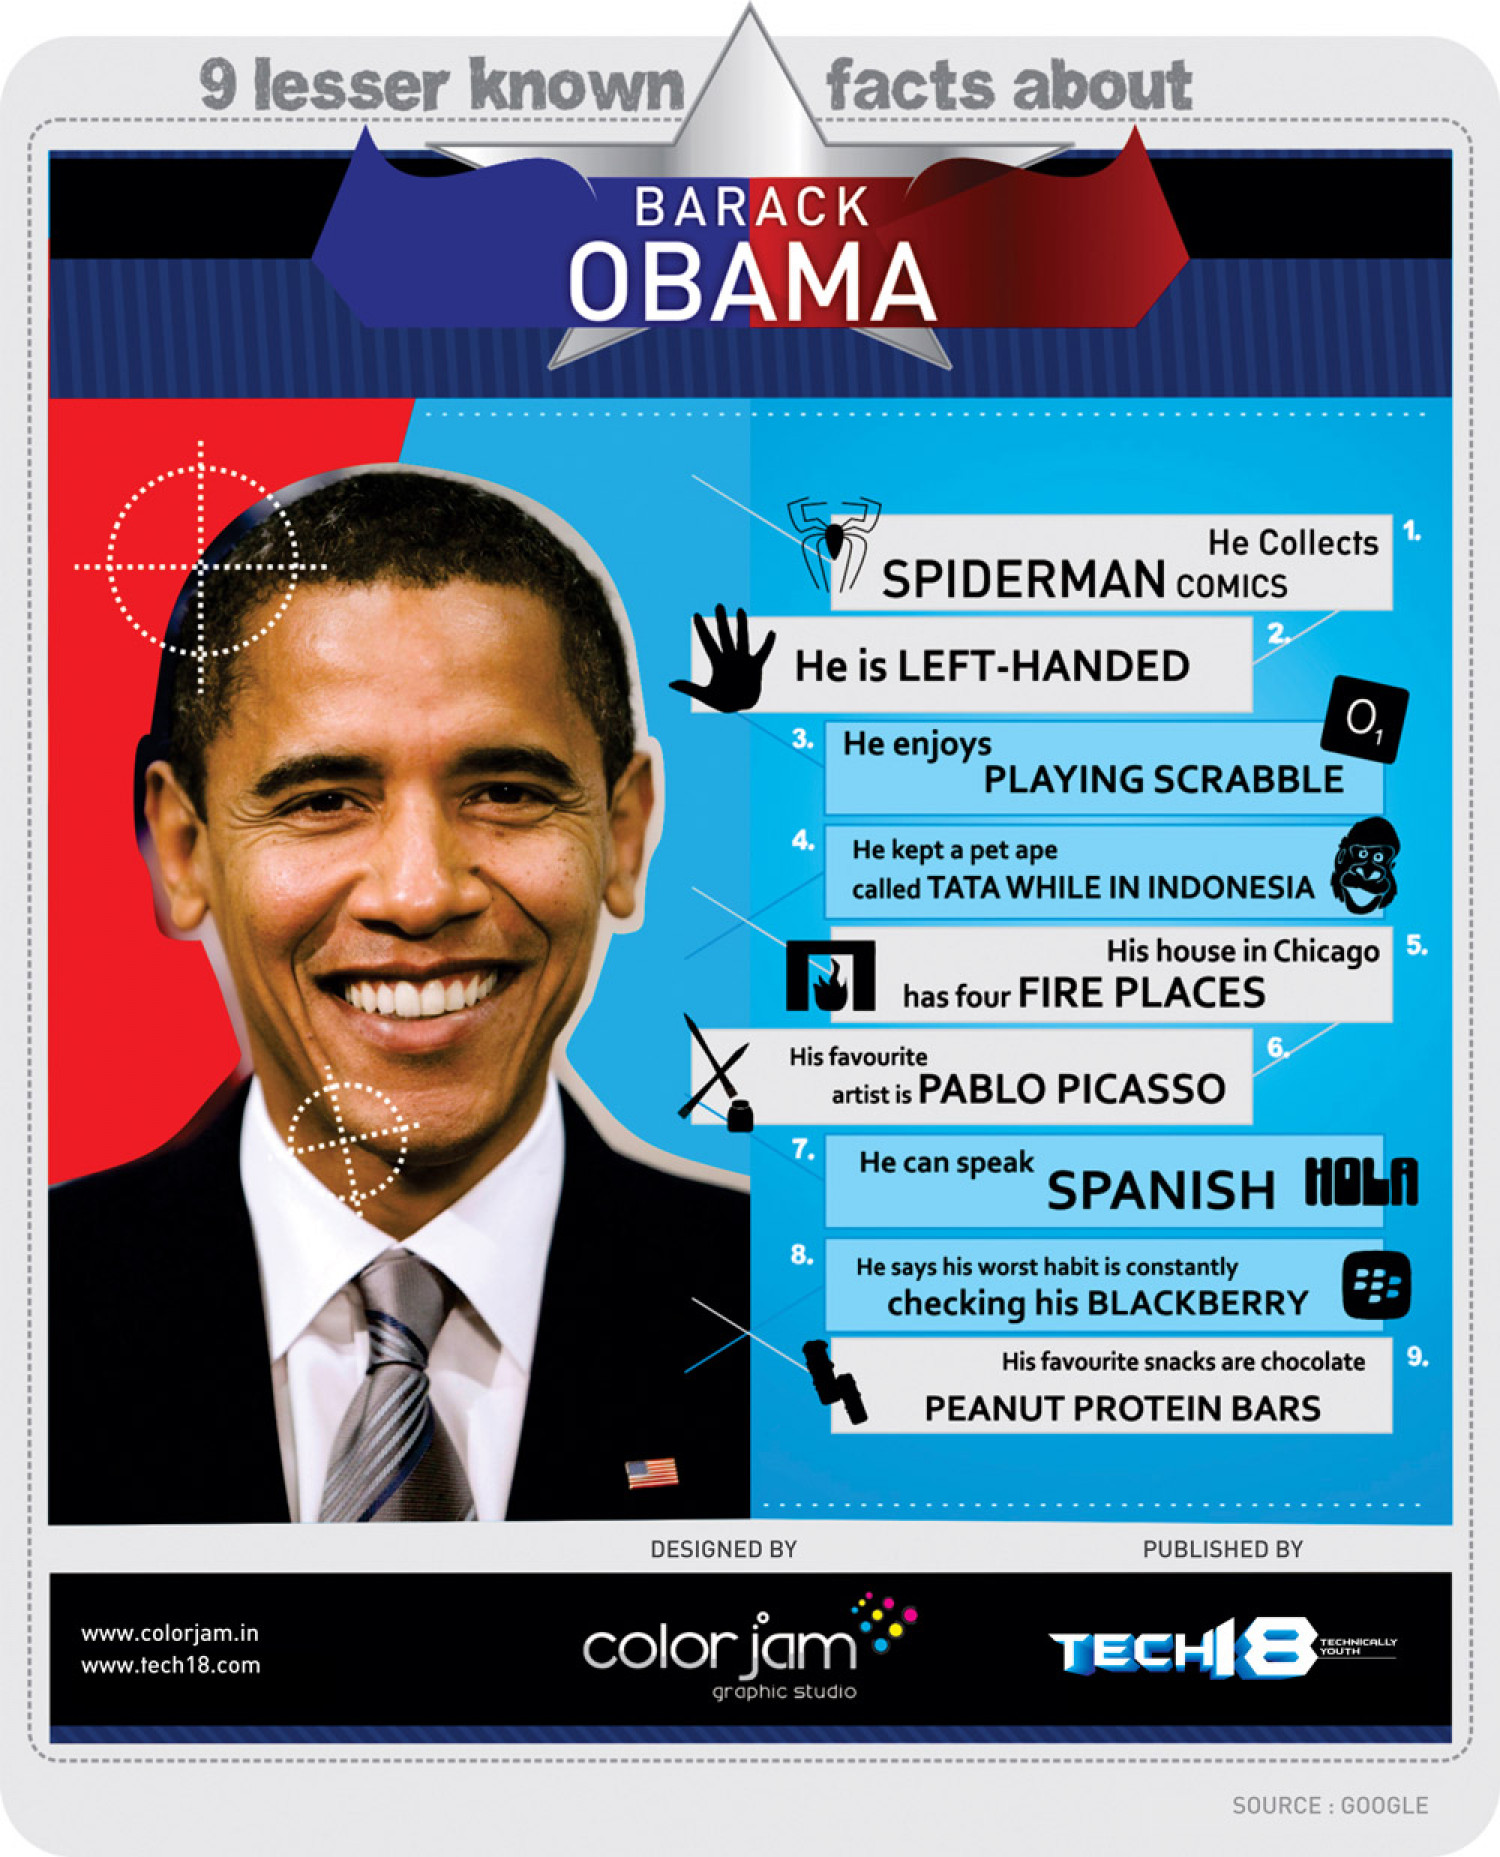 9 Lesser Known Facts About Barack Obama (Infographic) Infographic